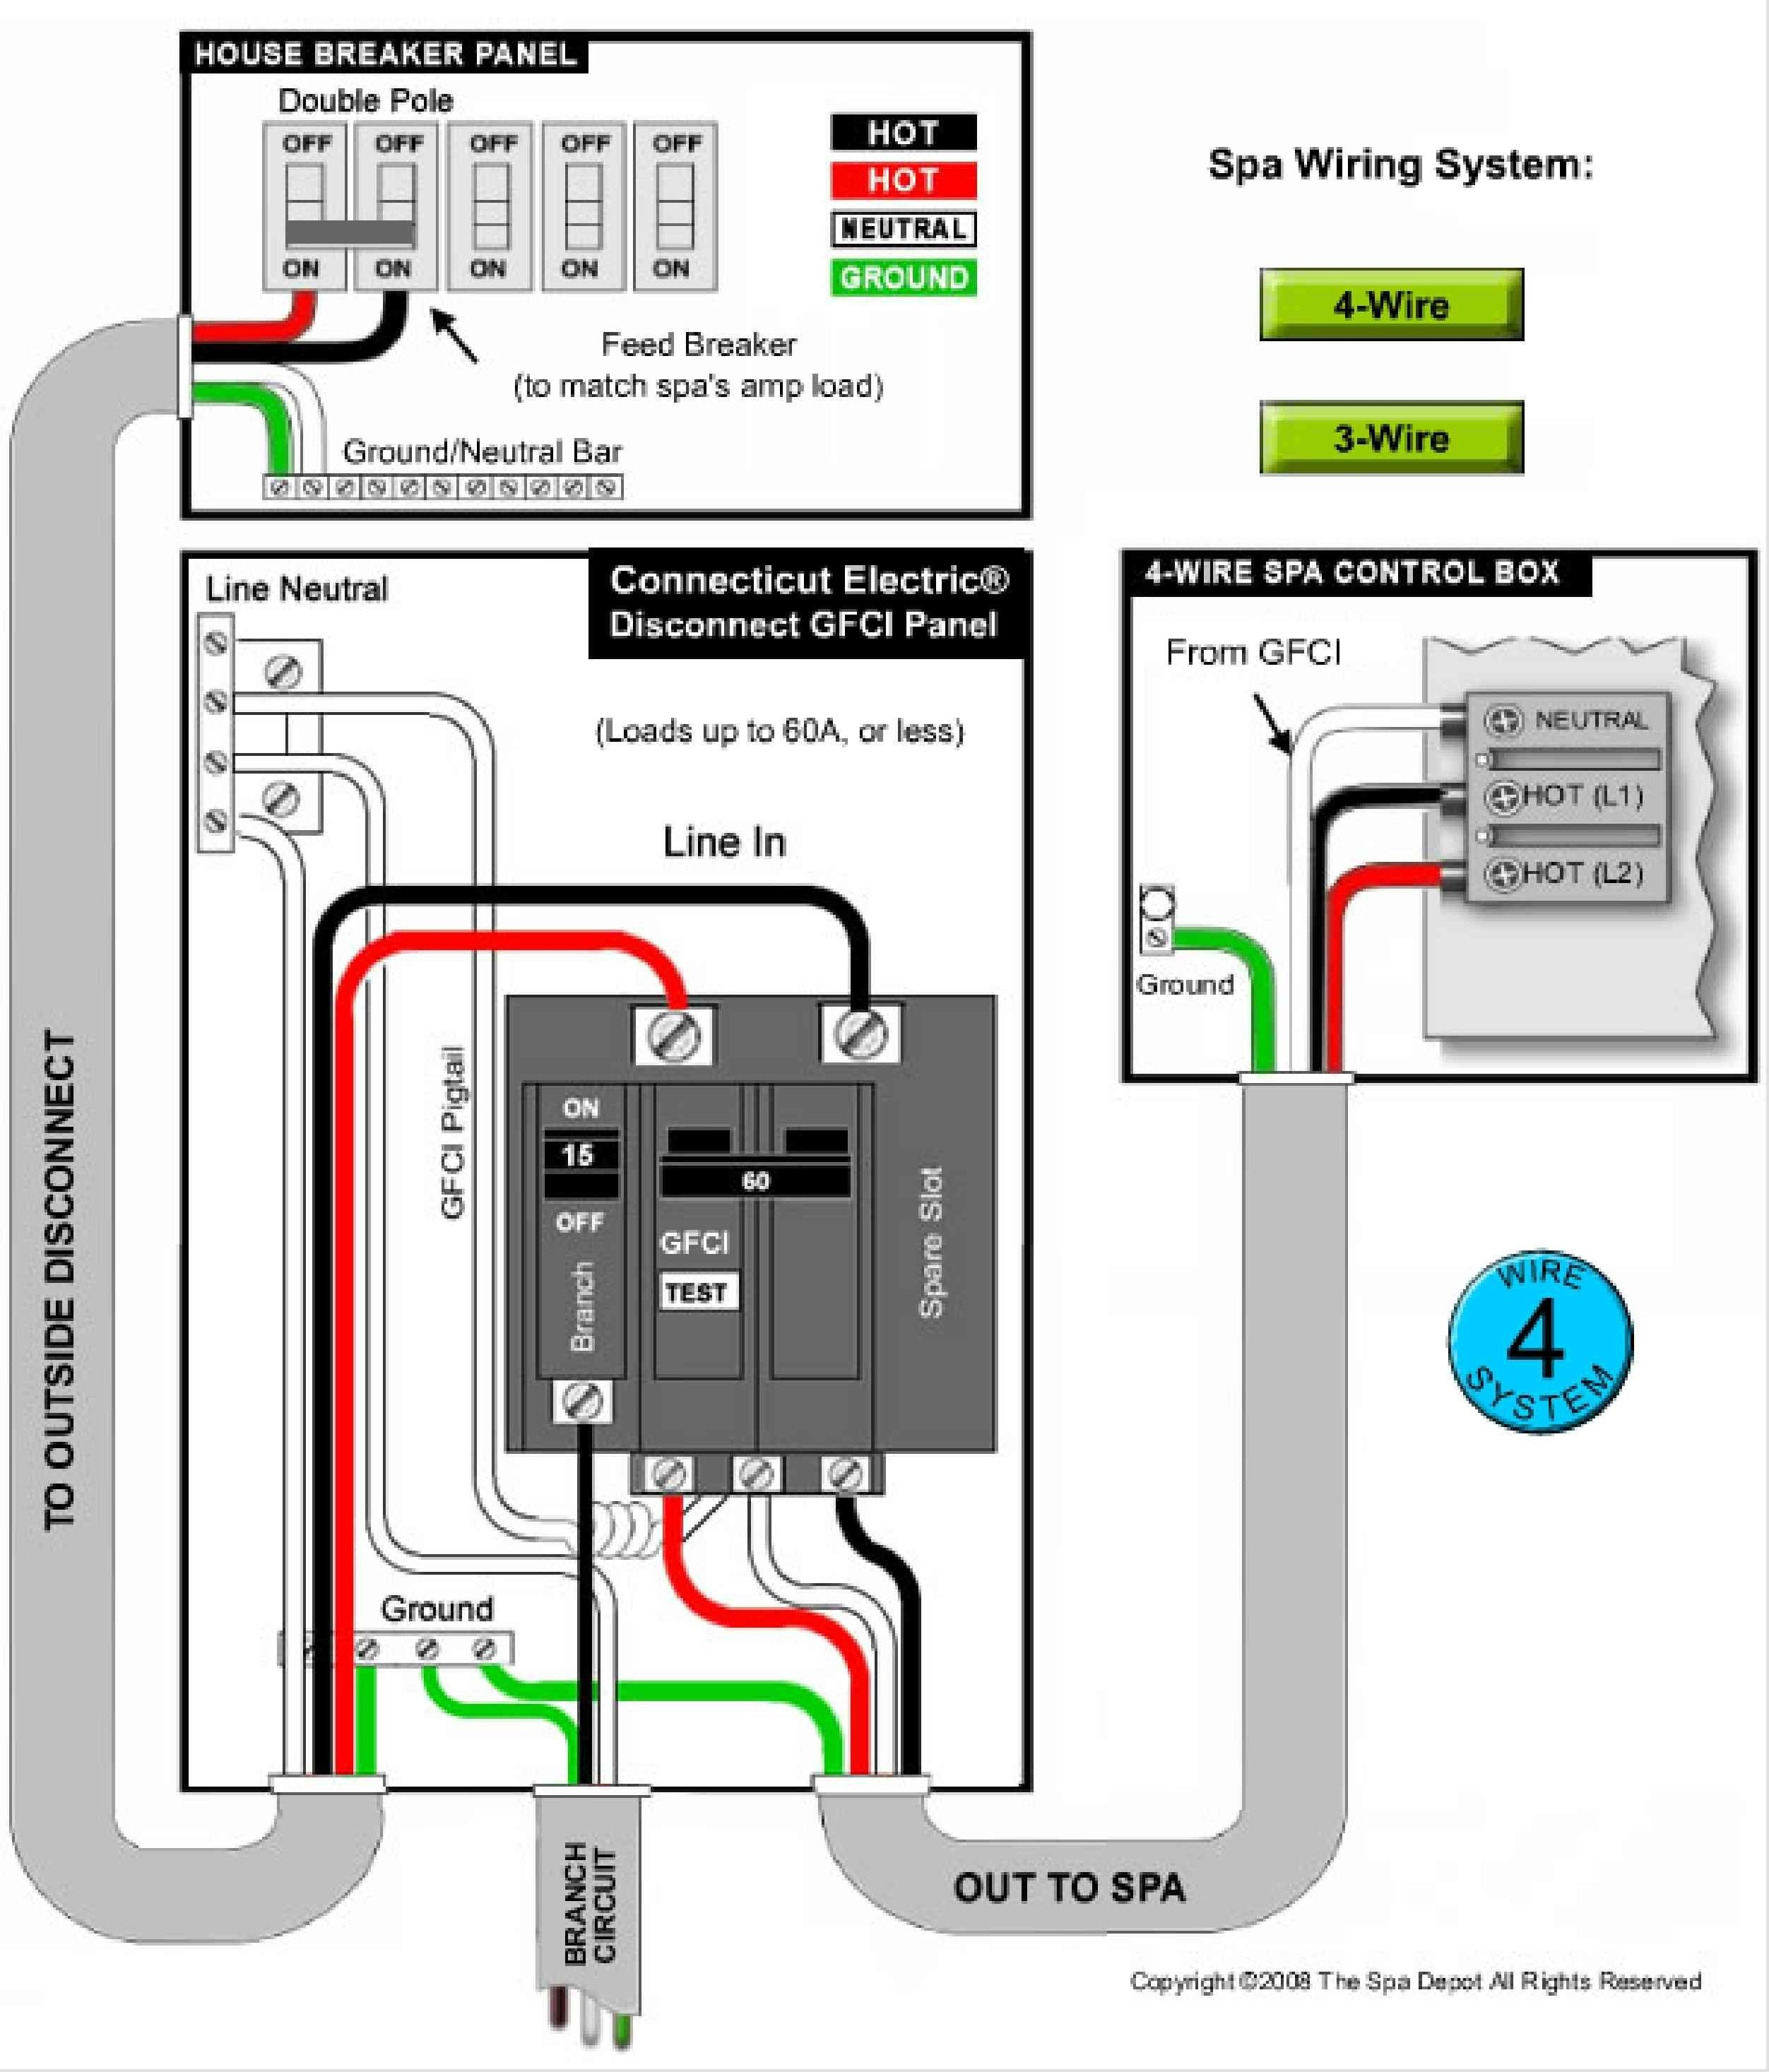 [DIAGRAM_3NM]  Unique Wiring Diagram for Electric Stove Outlet #diagram #diagramsample  #diagramtemplate #wiringdiagram #diagramchart #wo… | Hot tub delivery,  Gfci, Jacuzzi hot tub | Hot Knife Wiring Diagram |  | Pinterest